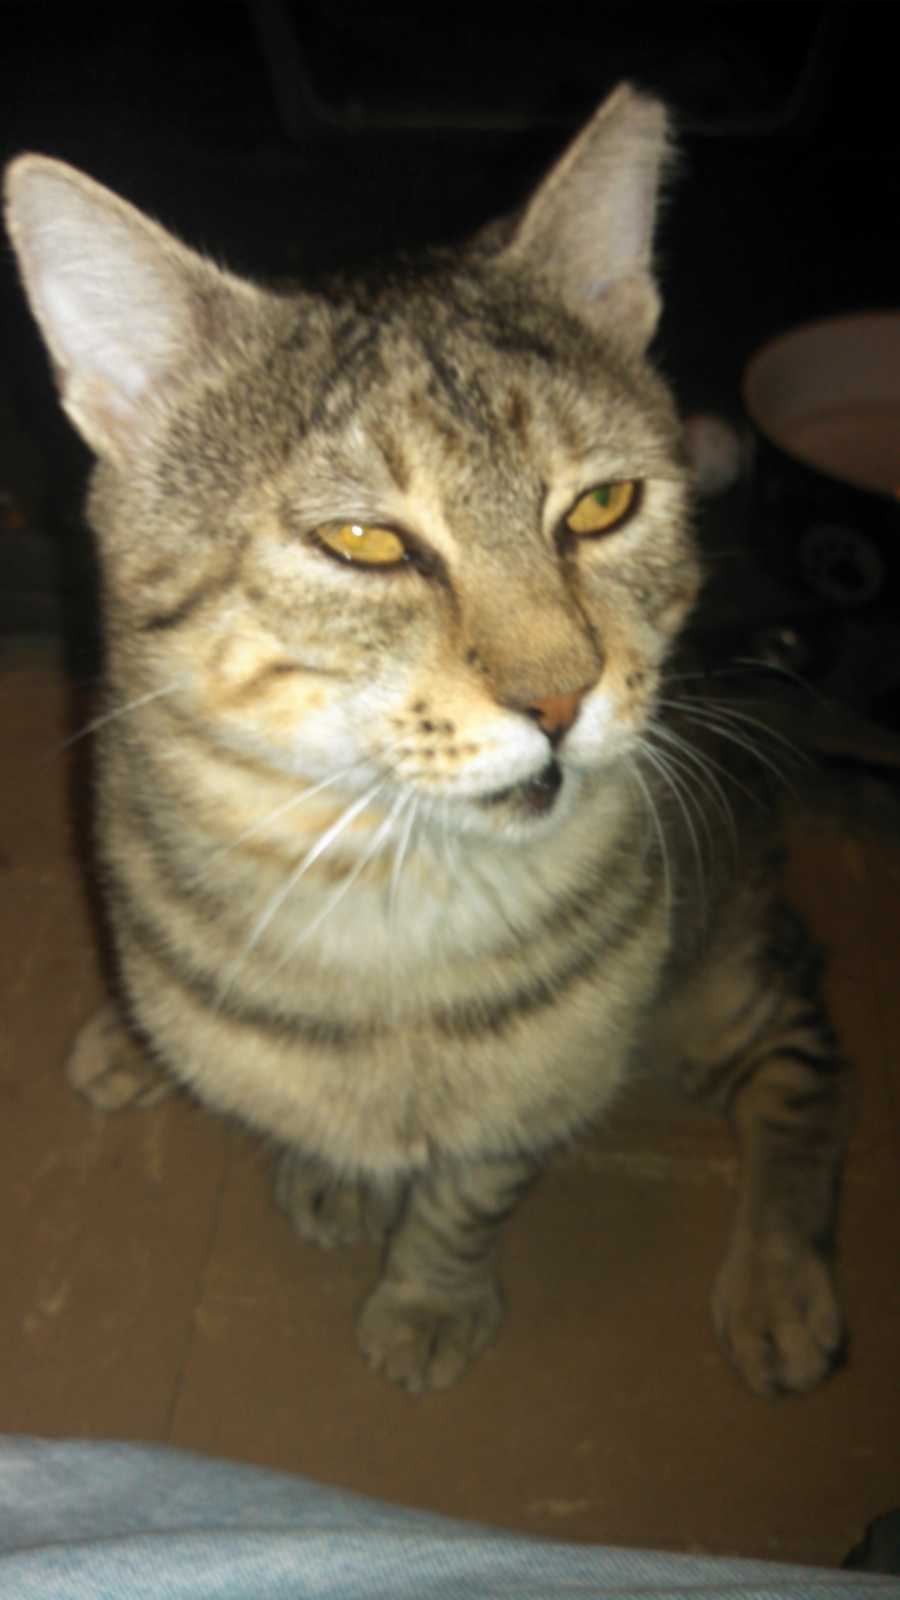 My name is Louie. I am a very friendly, playful 4 year old tan tabby. I have hip displaysia so I should be in a home without young children. I do not like other cats so would like to be the only pet in the house. Please give me a good home! More